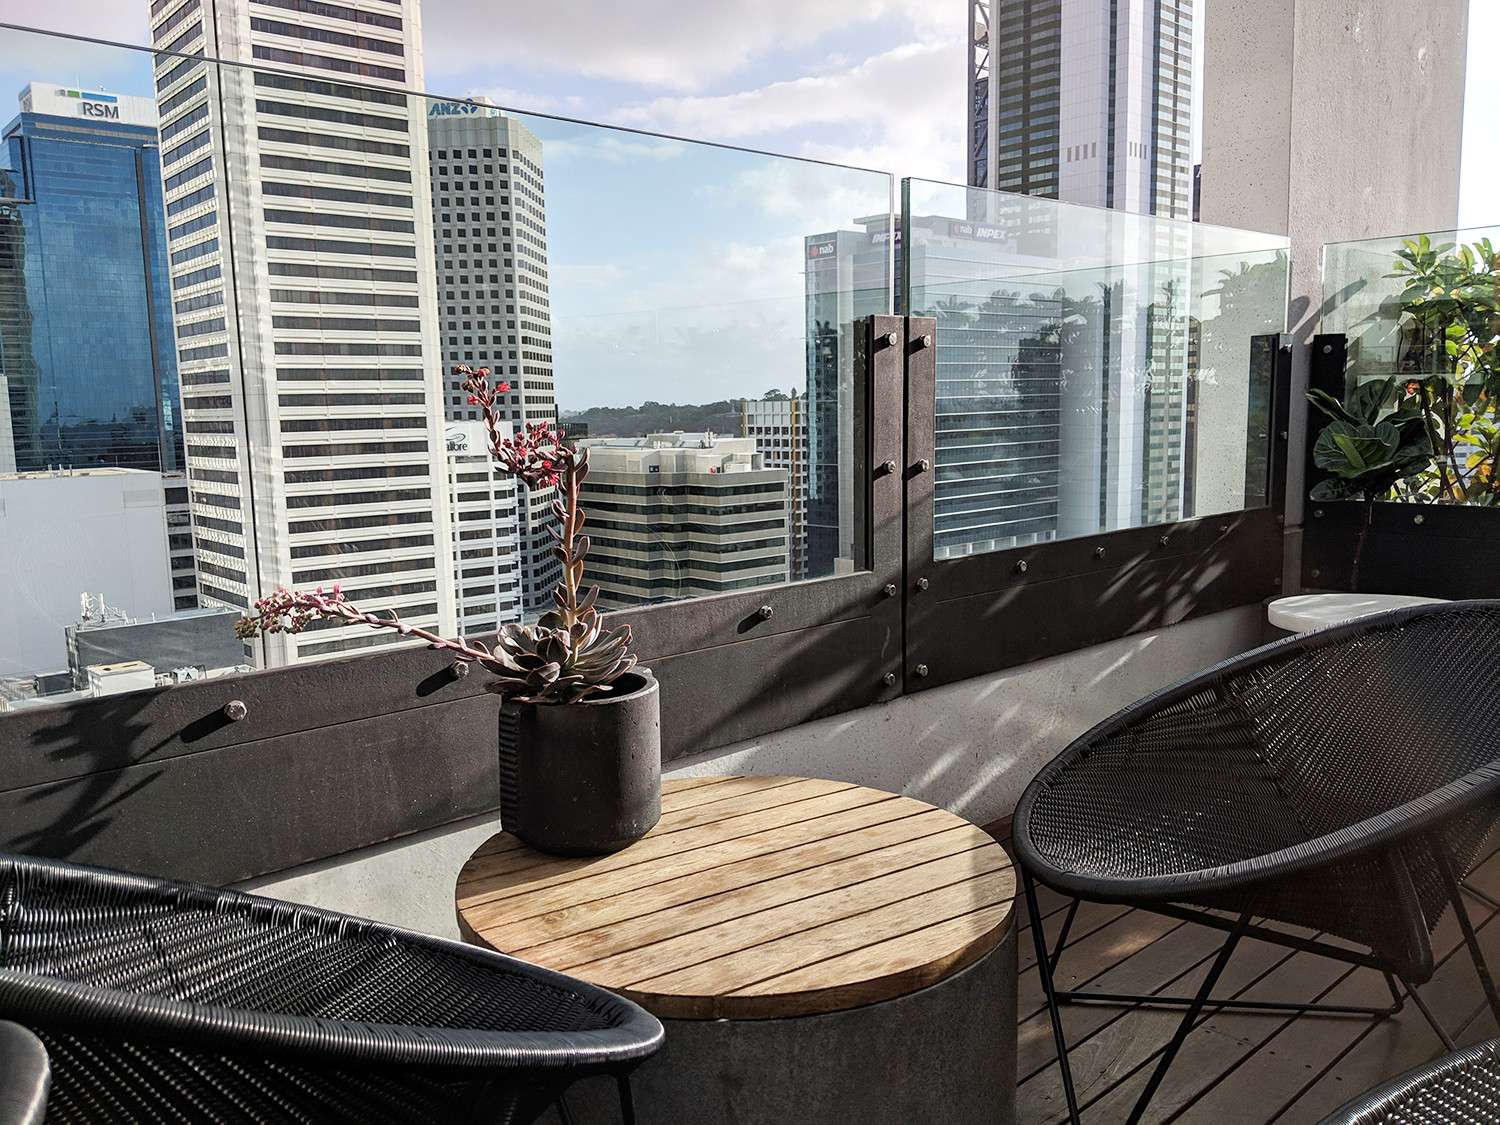 qt-hotel-perth-city-views-balustrading